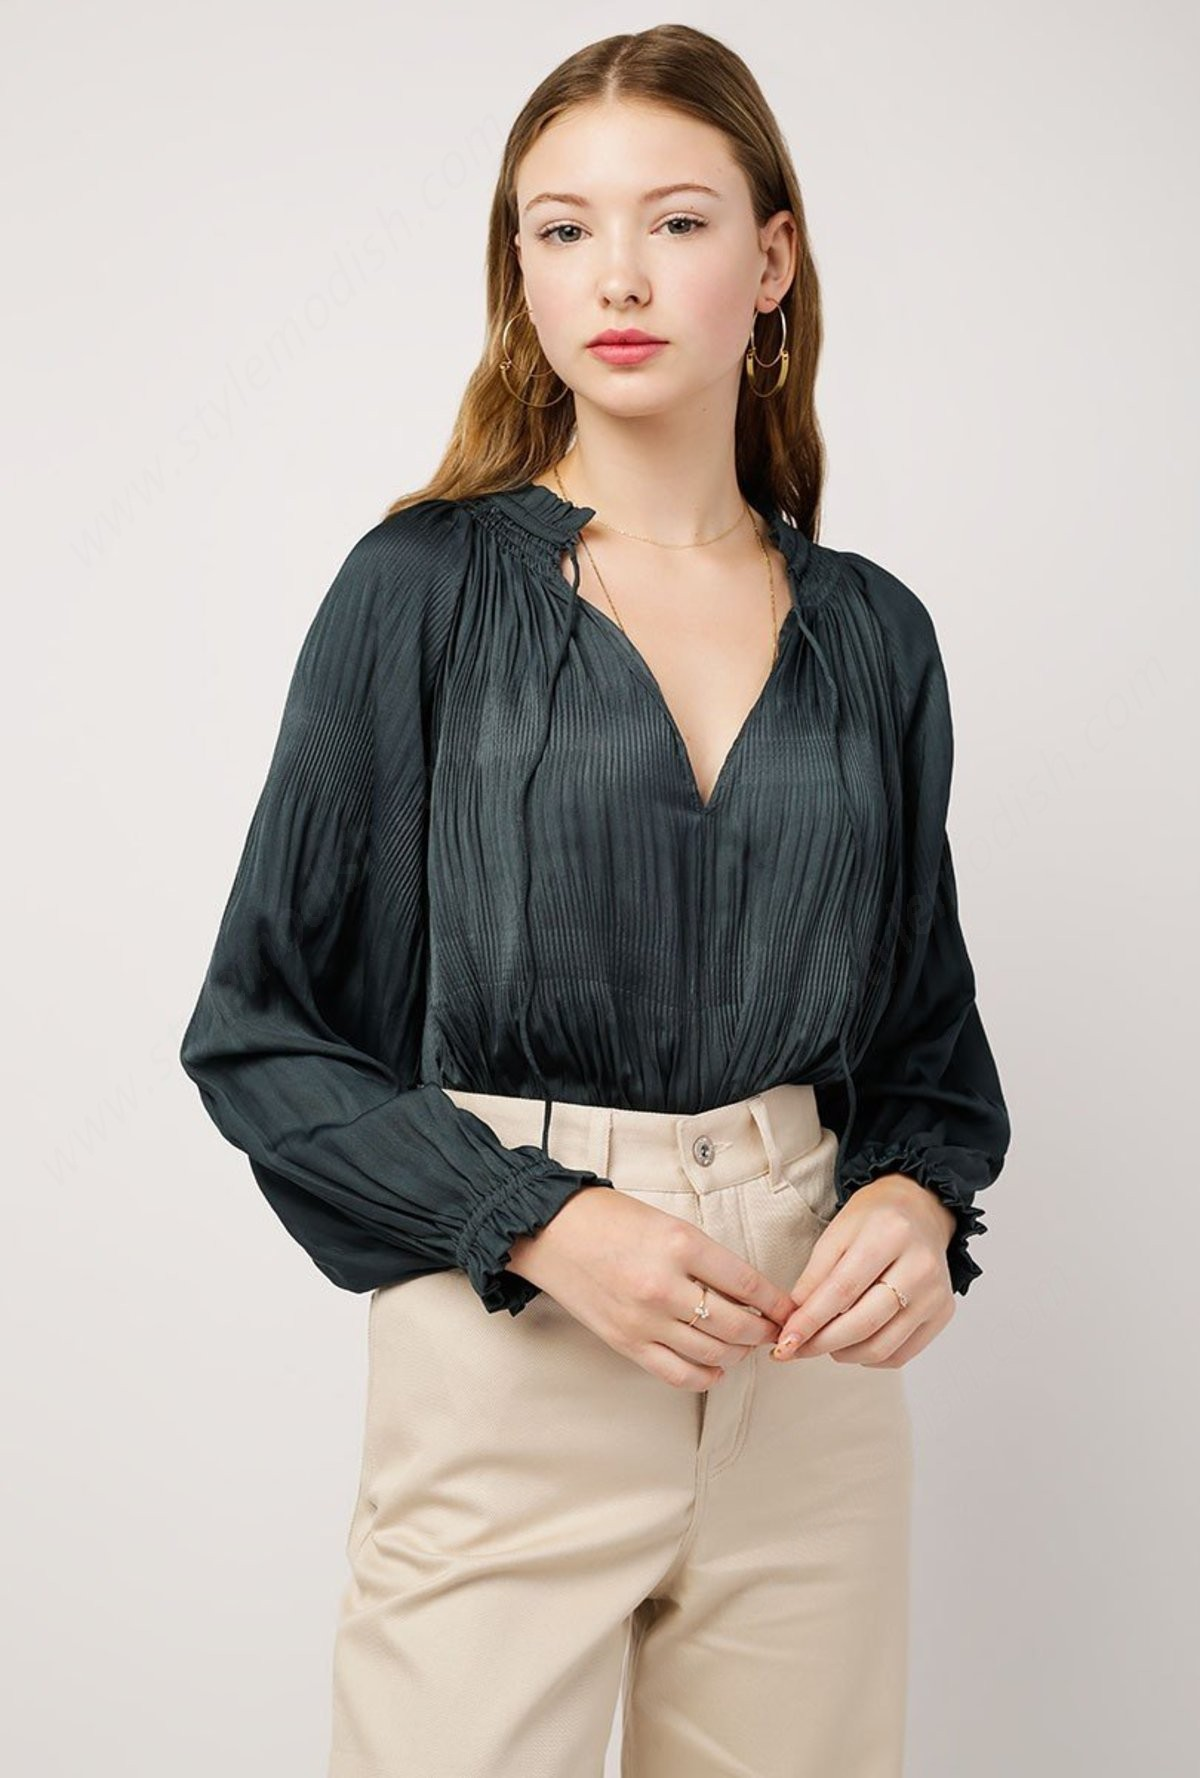 Woman's Azalea Tie Collar Top - Woman's Azalea Tie Collar Top